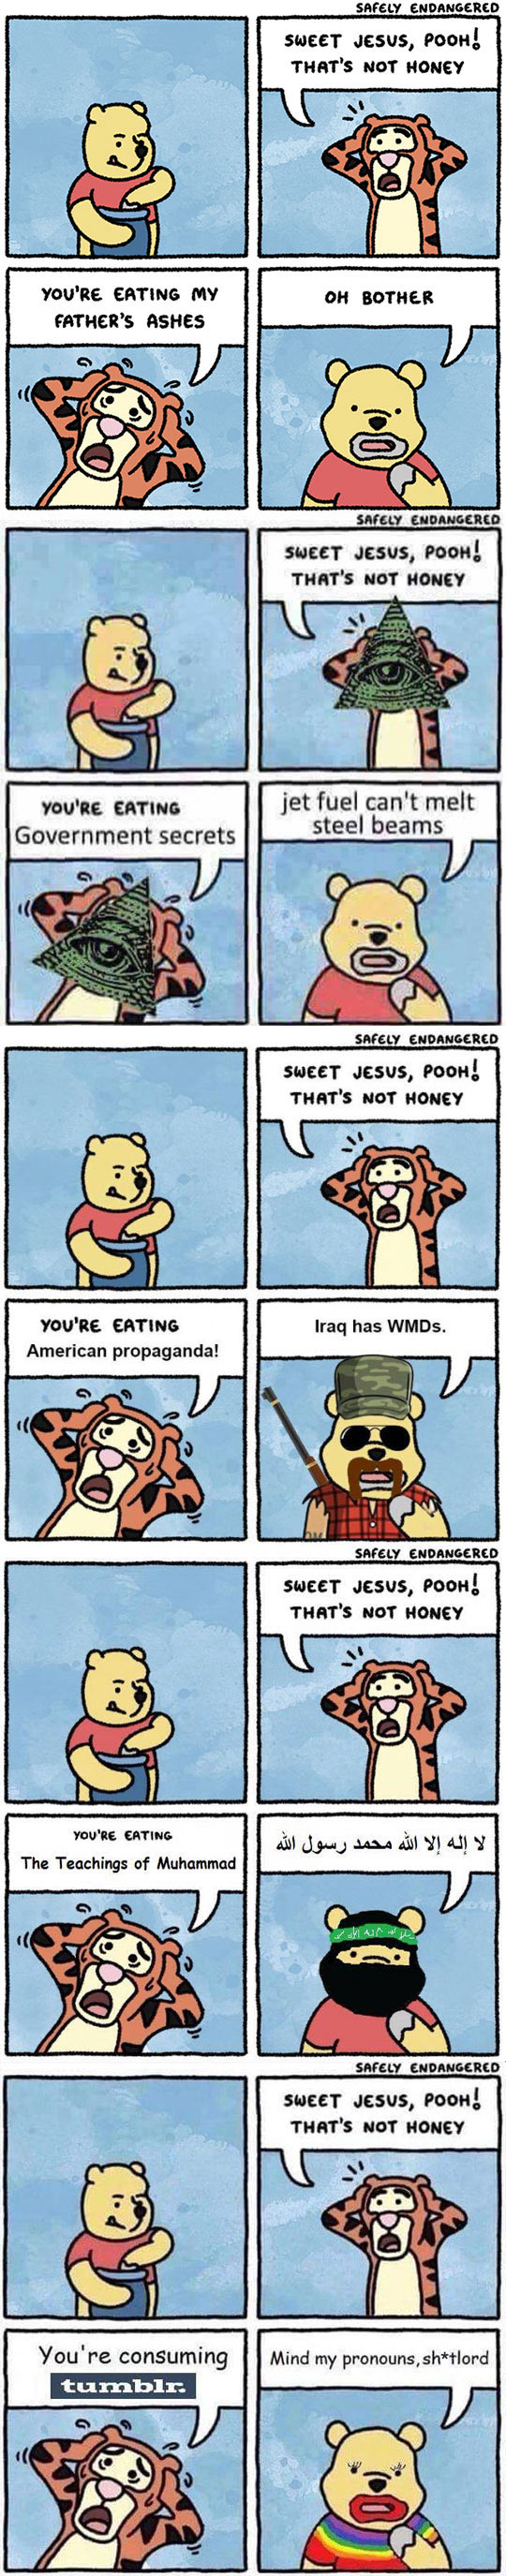 funny-webcomic-Winnie-Pooh-eating-ashes